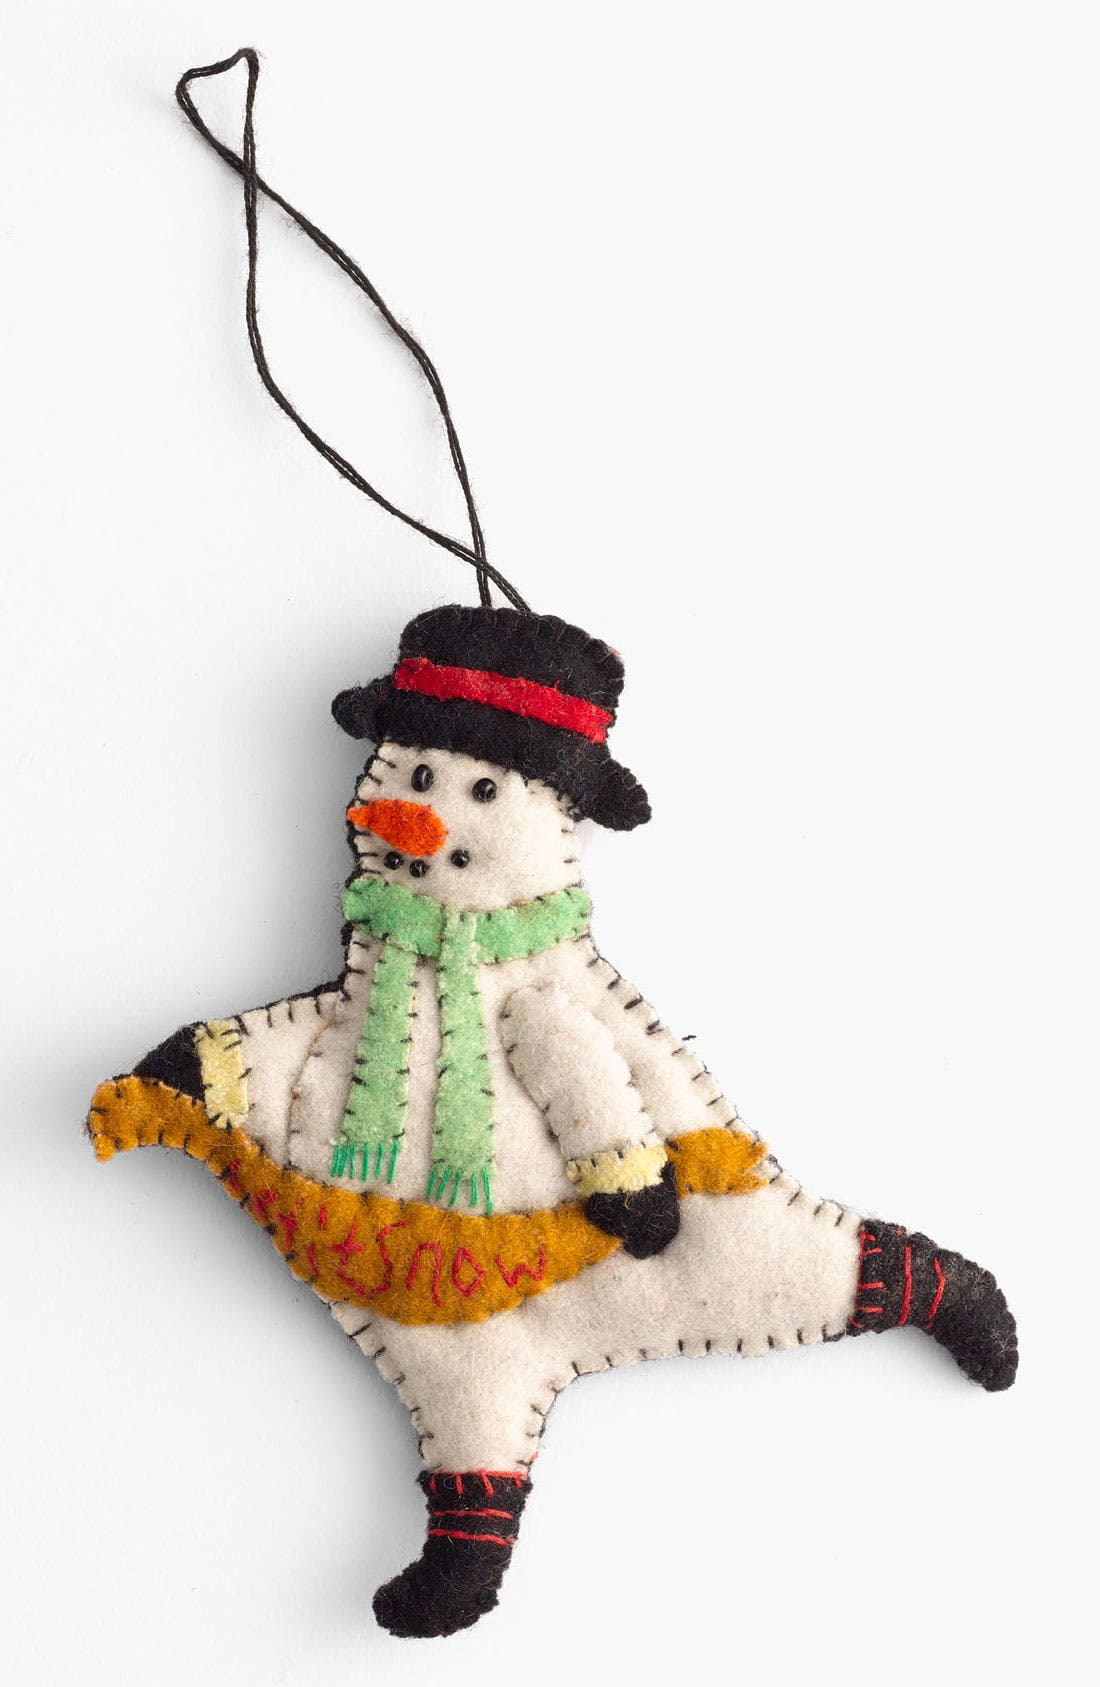 Alternate Image 1 Selected - New World Arts 'Let It Snow' Snowman Ornament